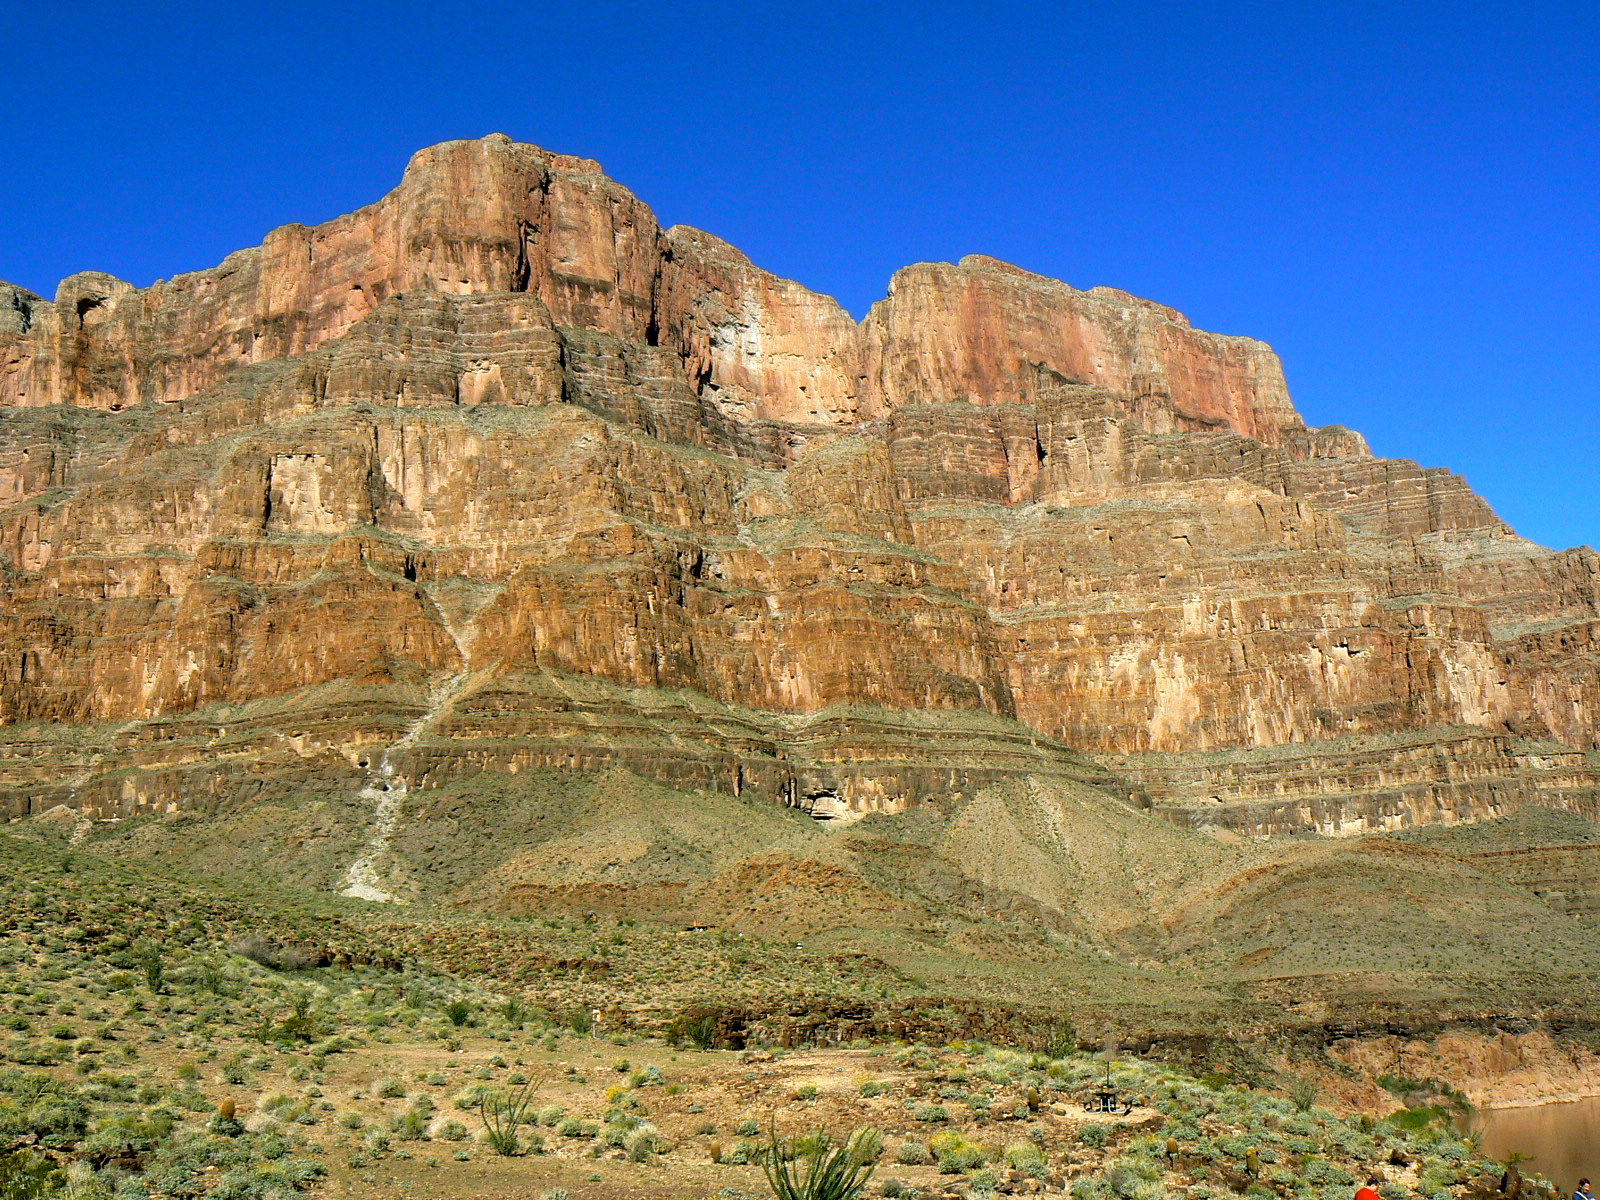 Monday Memento: Inside the Grand Canyon